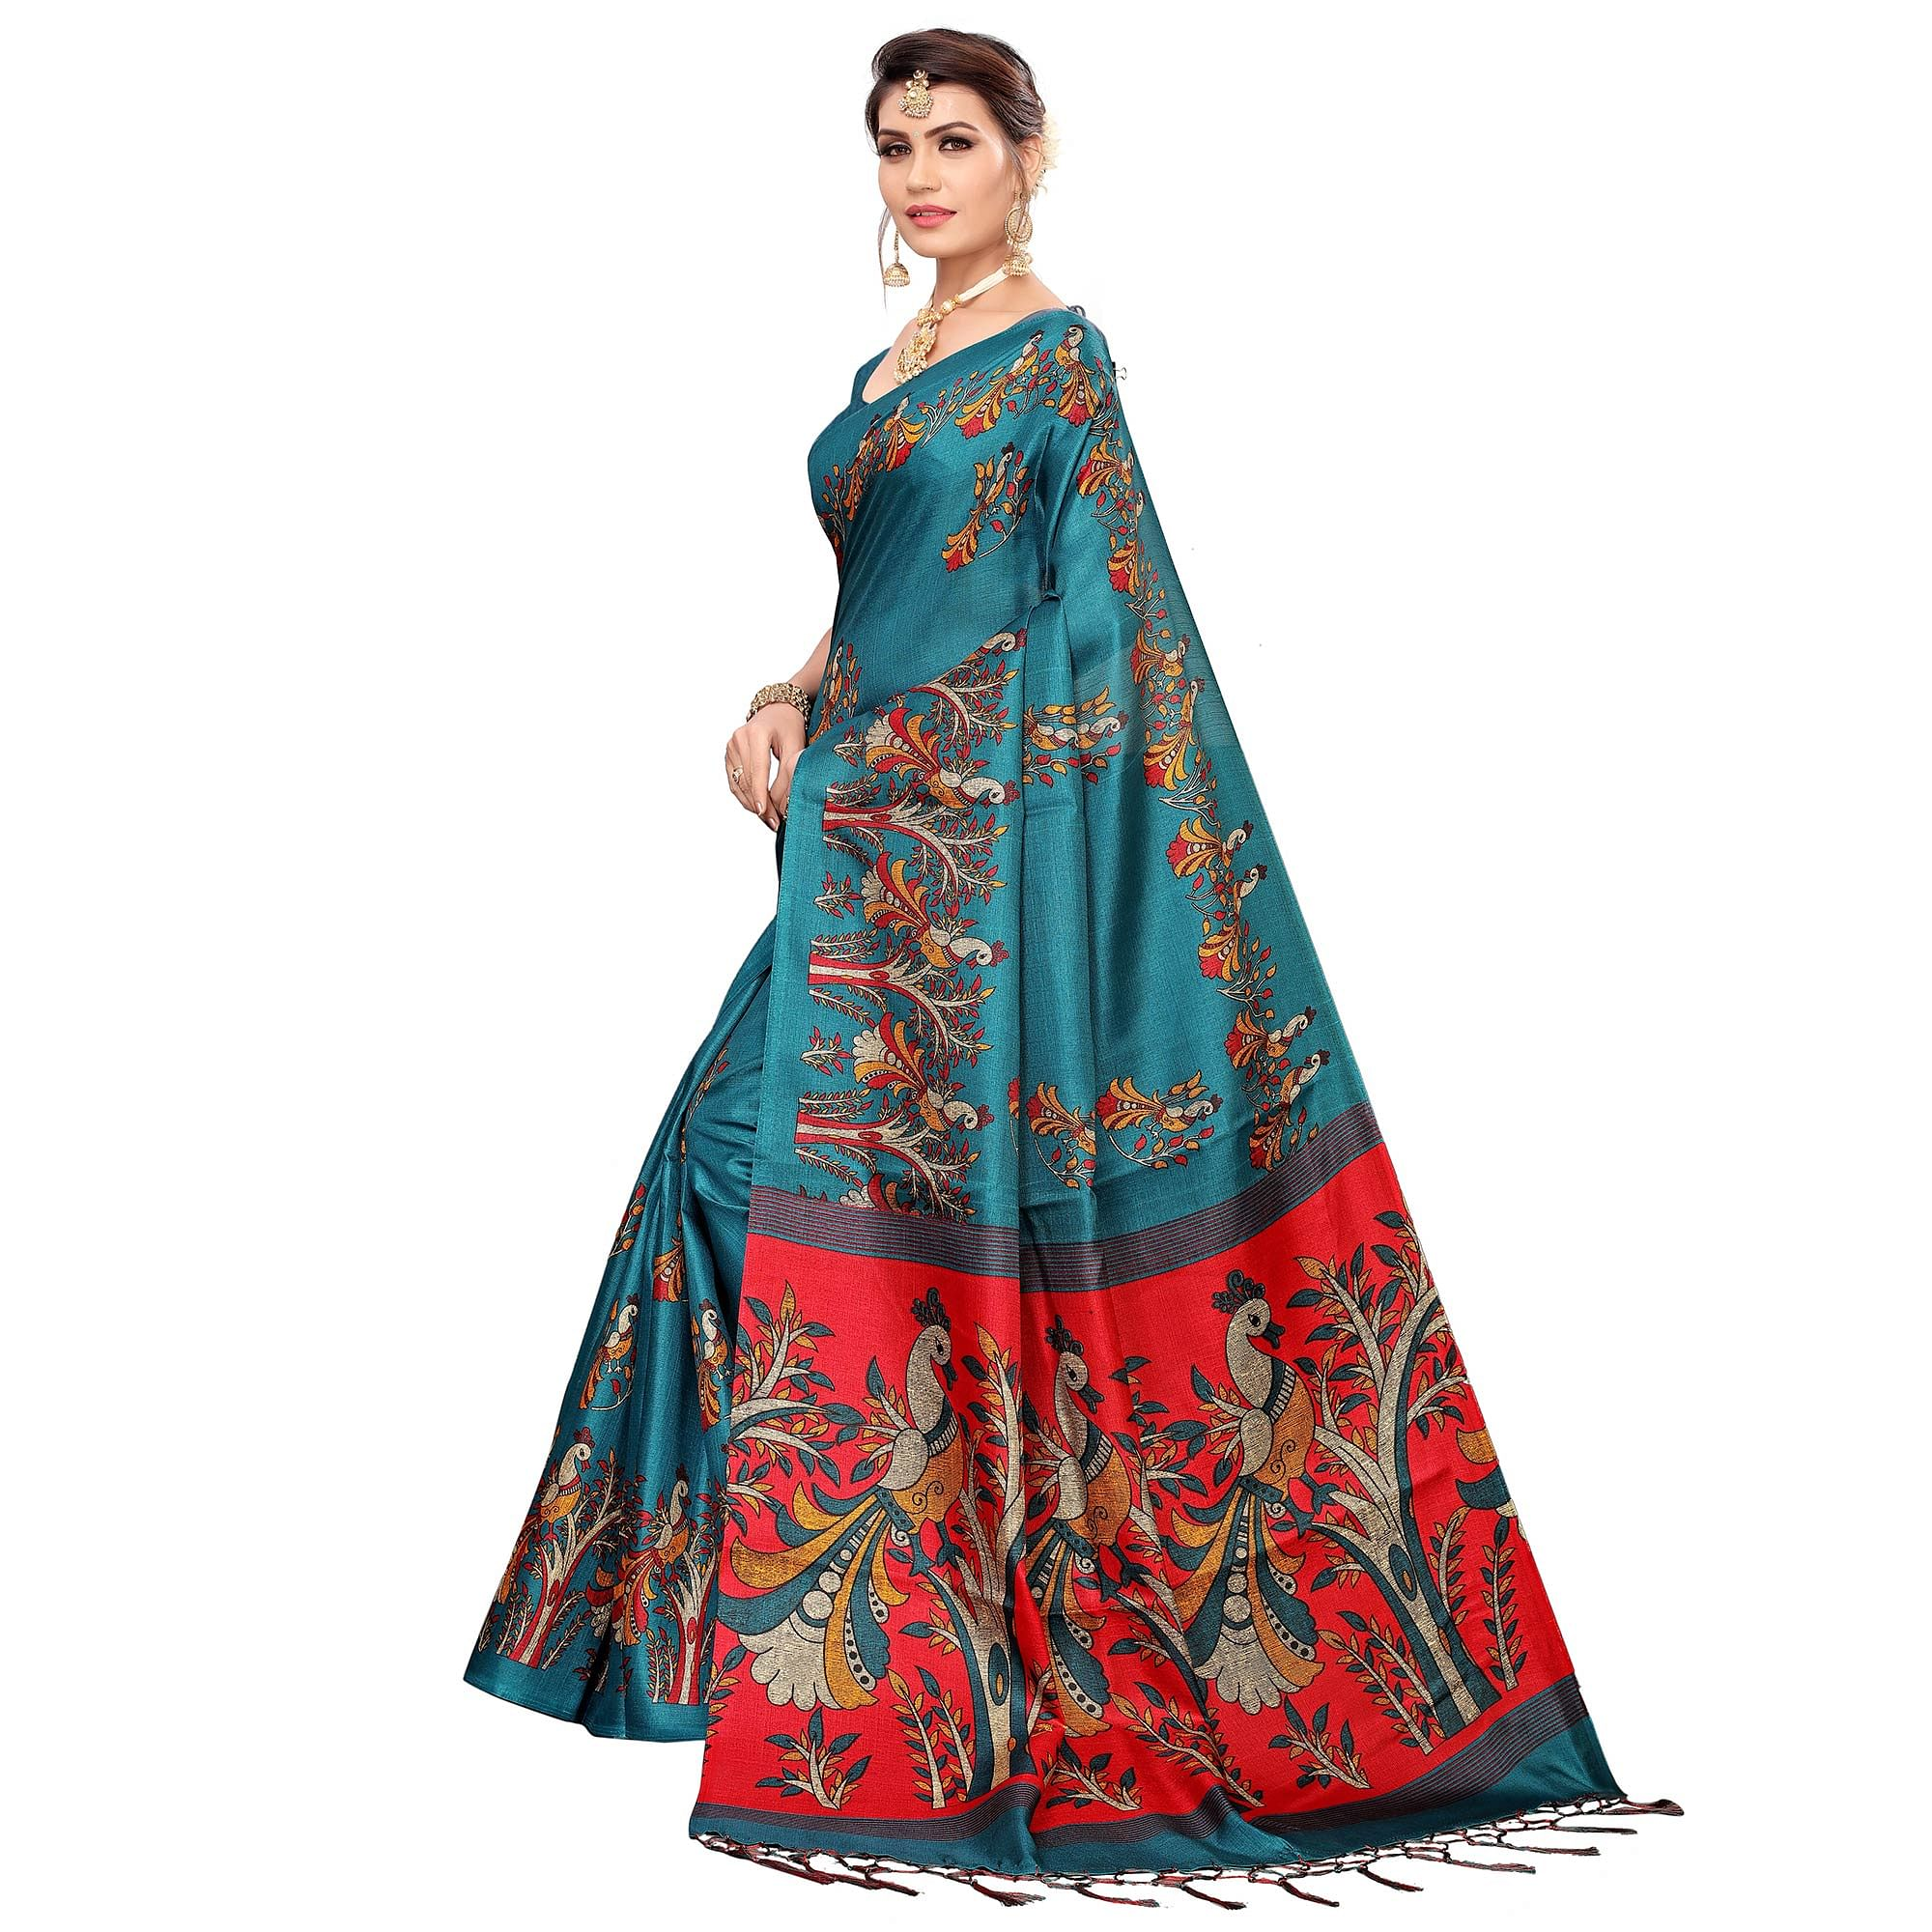 Marvellous Rama Blue Colored Festive Wear Khadi Silk Saree